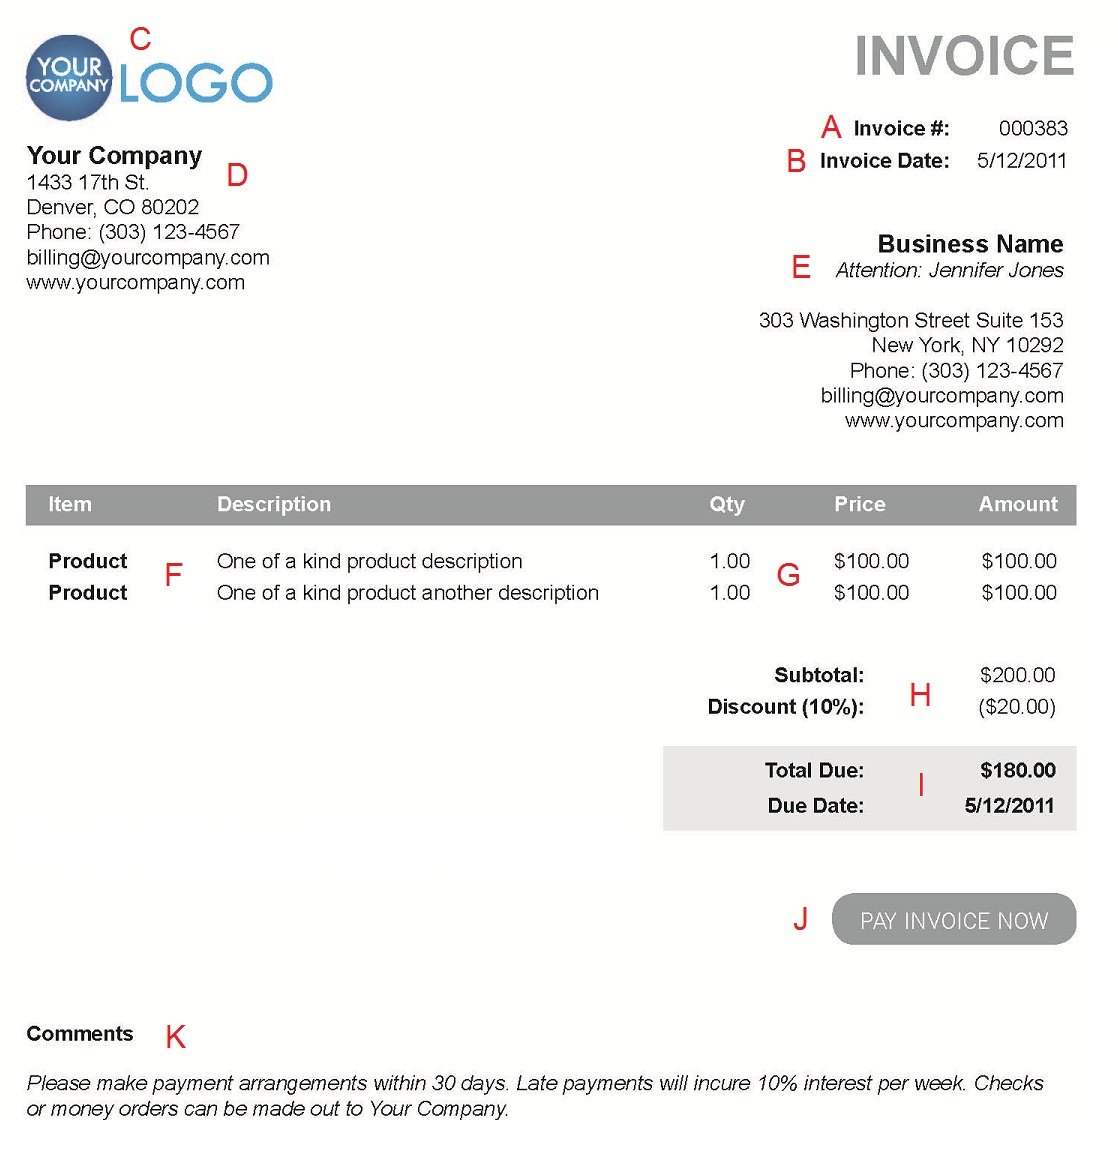 Shopdesignsus  Scenic The  Different Sections Of An Electronic Payment Invoice With Glamorous A  With Astounding Slip Receipt Also How To Write Receipt In Addition Upon Receipt Meaning And Square Up Print Receipts As Well As What Does Ledger Balance Mean On An Atm Receipt Additionally Receipt Template Free Download From Paysimplecom With Shopdesignsus  Glamorous The  Different Sections Of An Electronic Payment Invoice With Astounding A  And Scenic Slip Receipt Also How To Write Receipt In Addition Upon Receipt Meaning From Paysimplecom